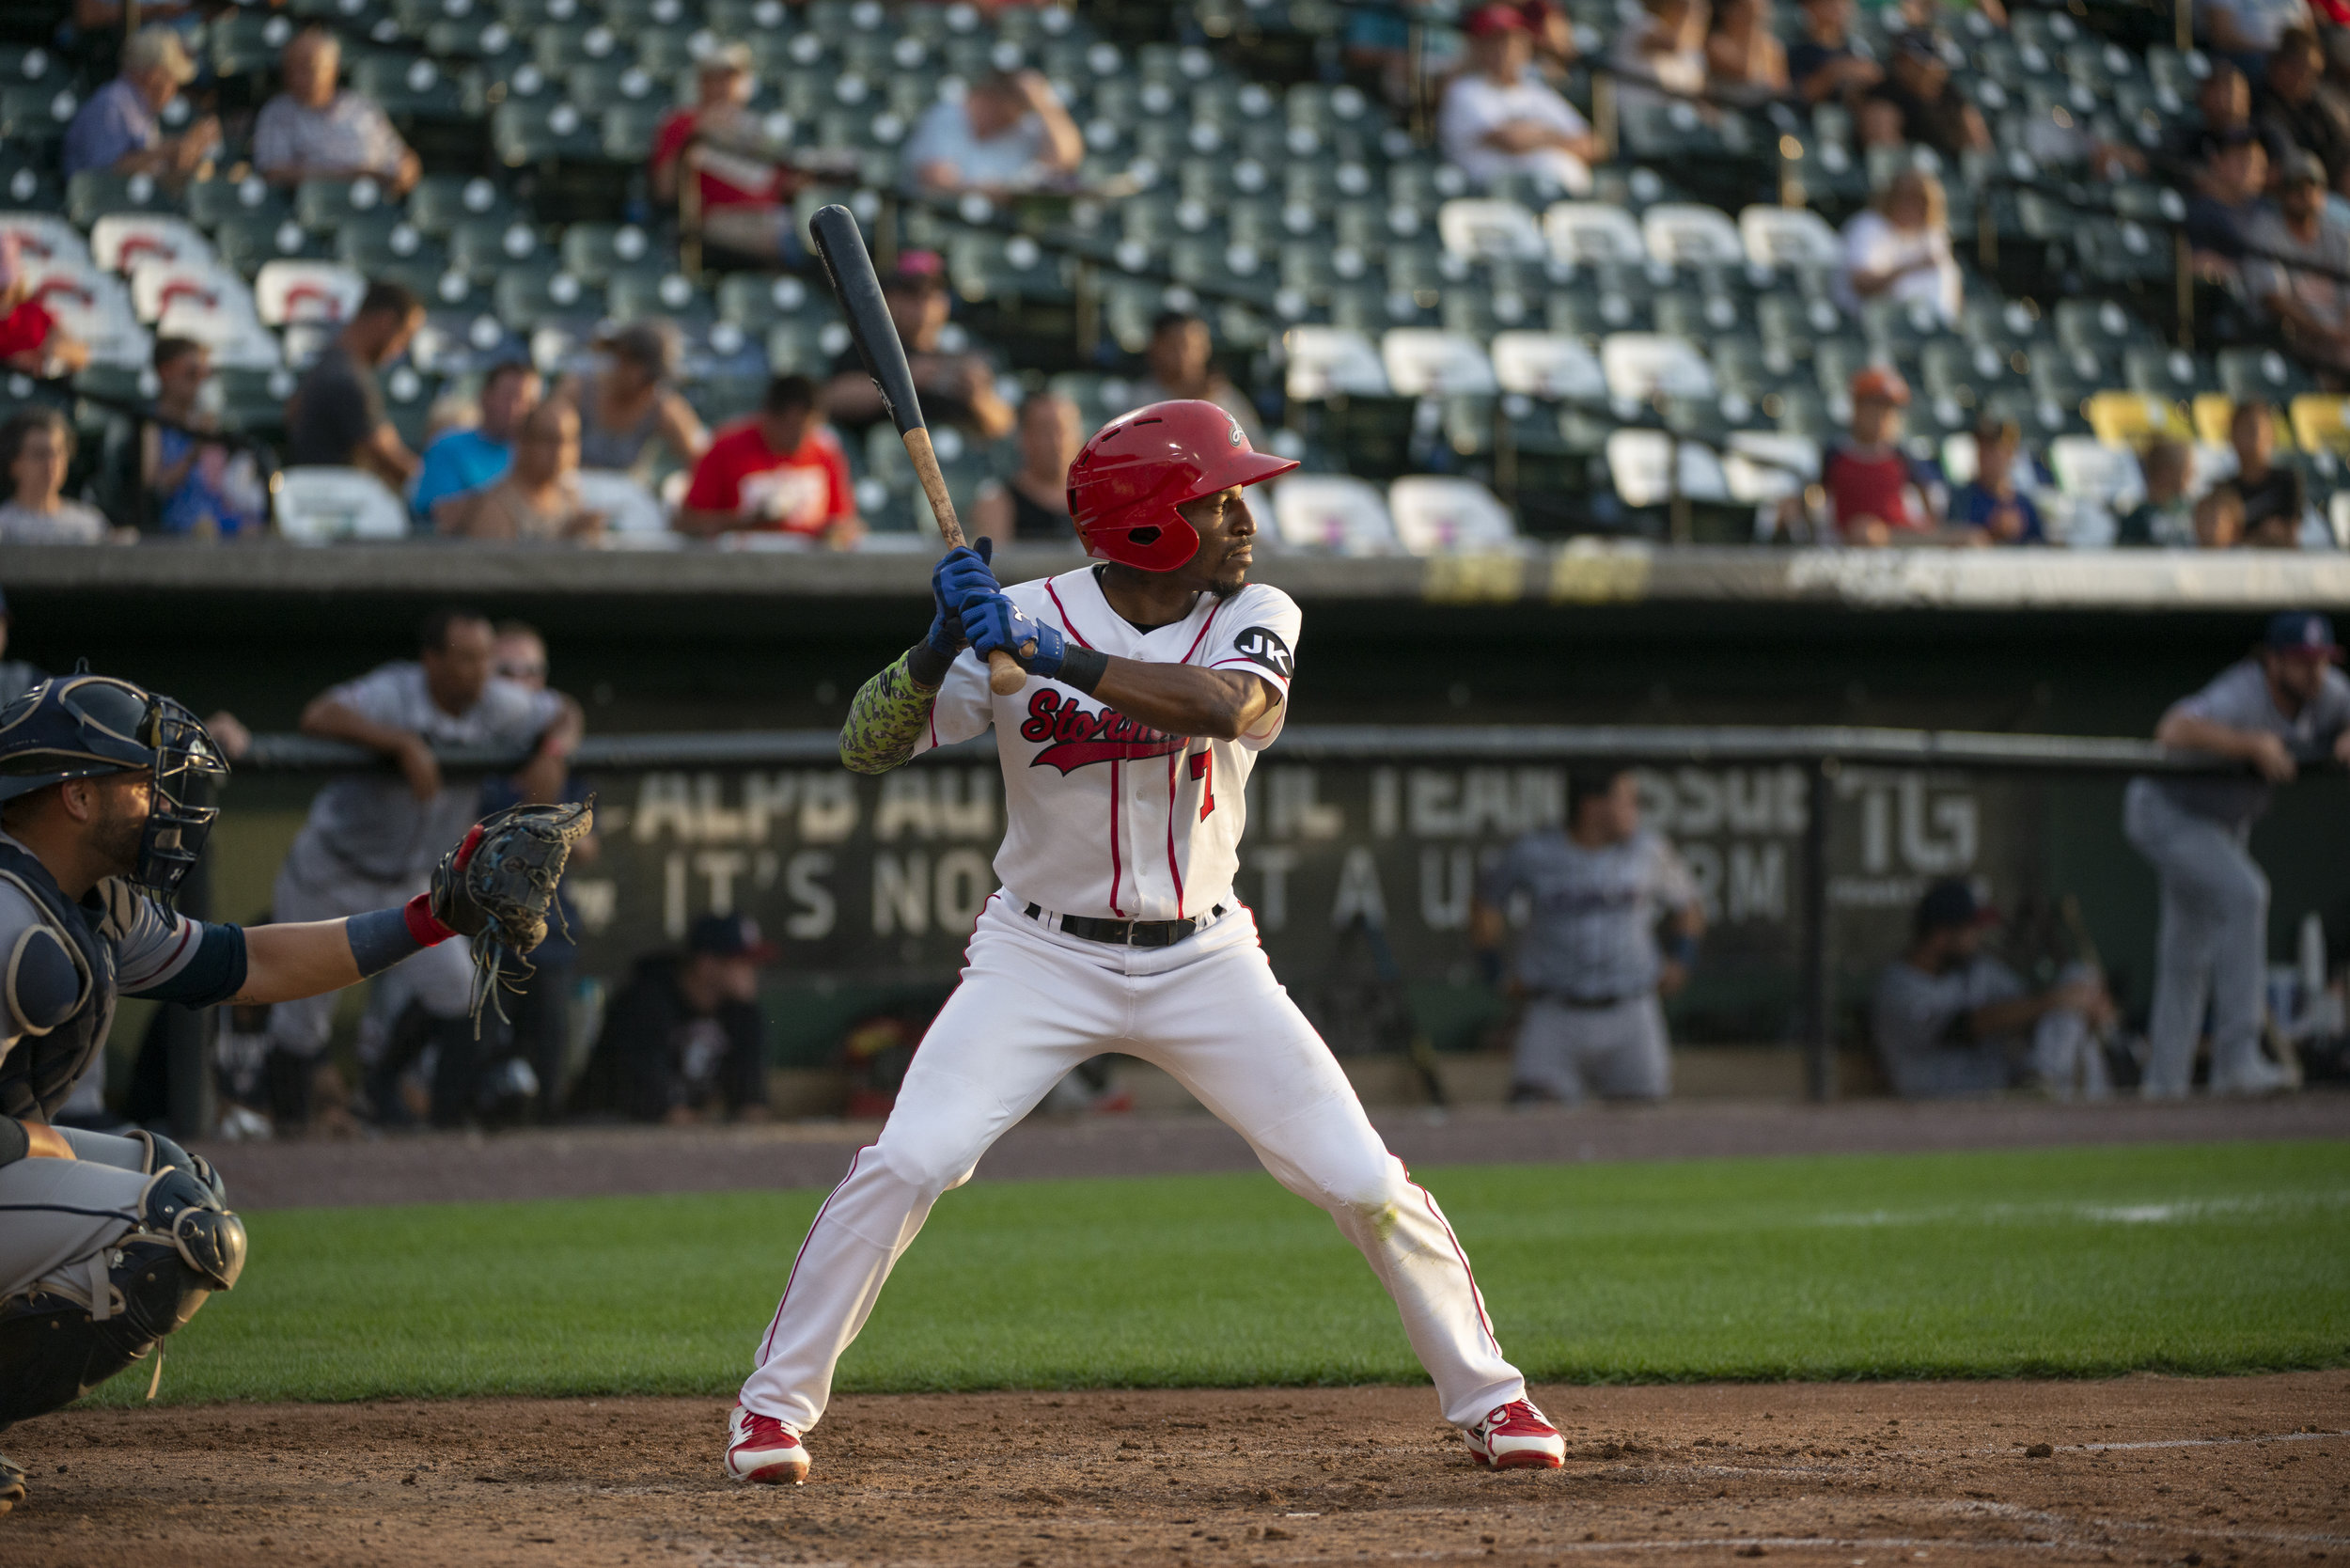 Chrissy Gelzunas/Special to the Citizen  Park product Darian Sandford is currently leading the Atlantic League with 44 stolen bases.